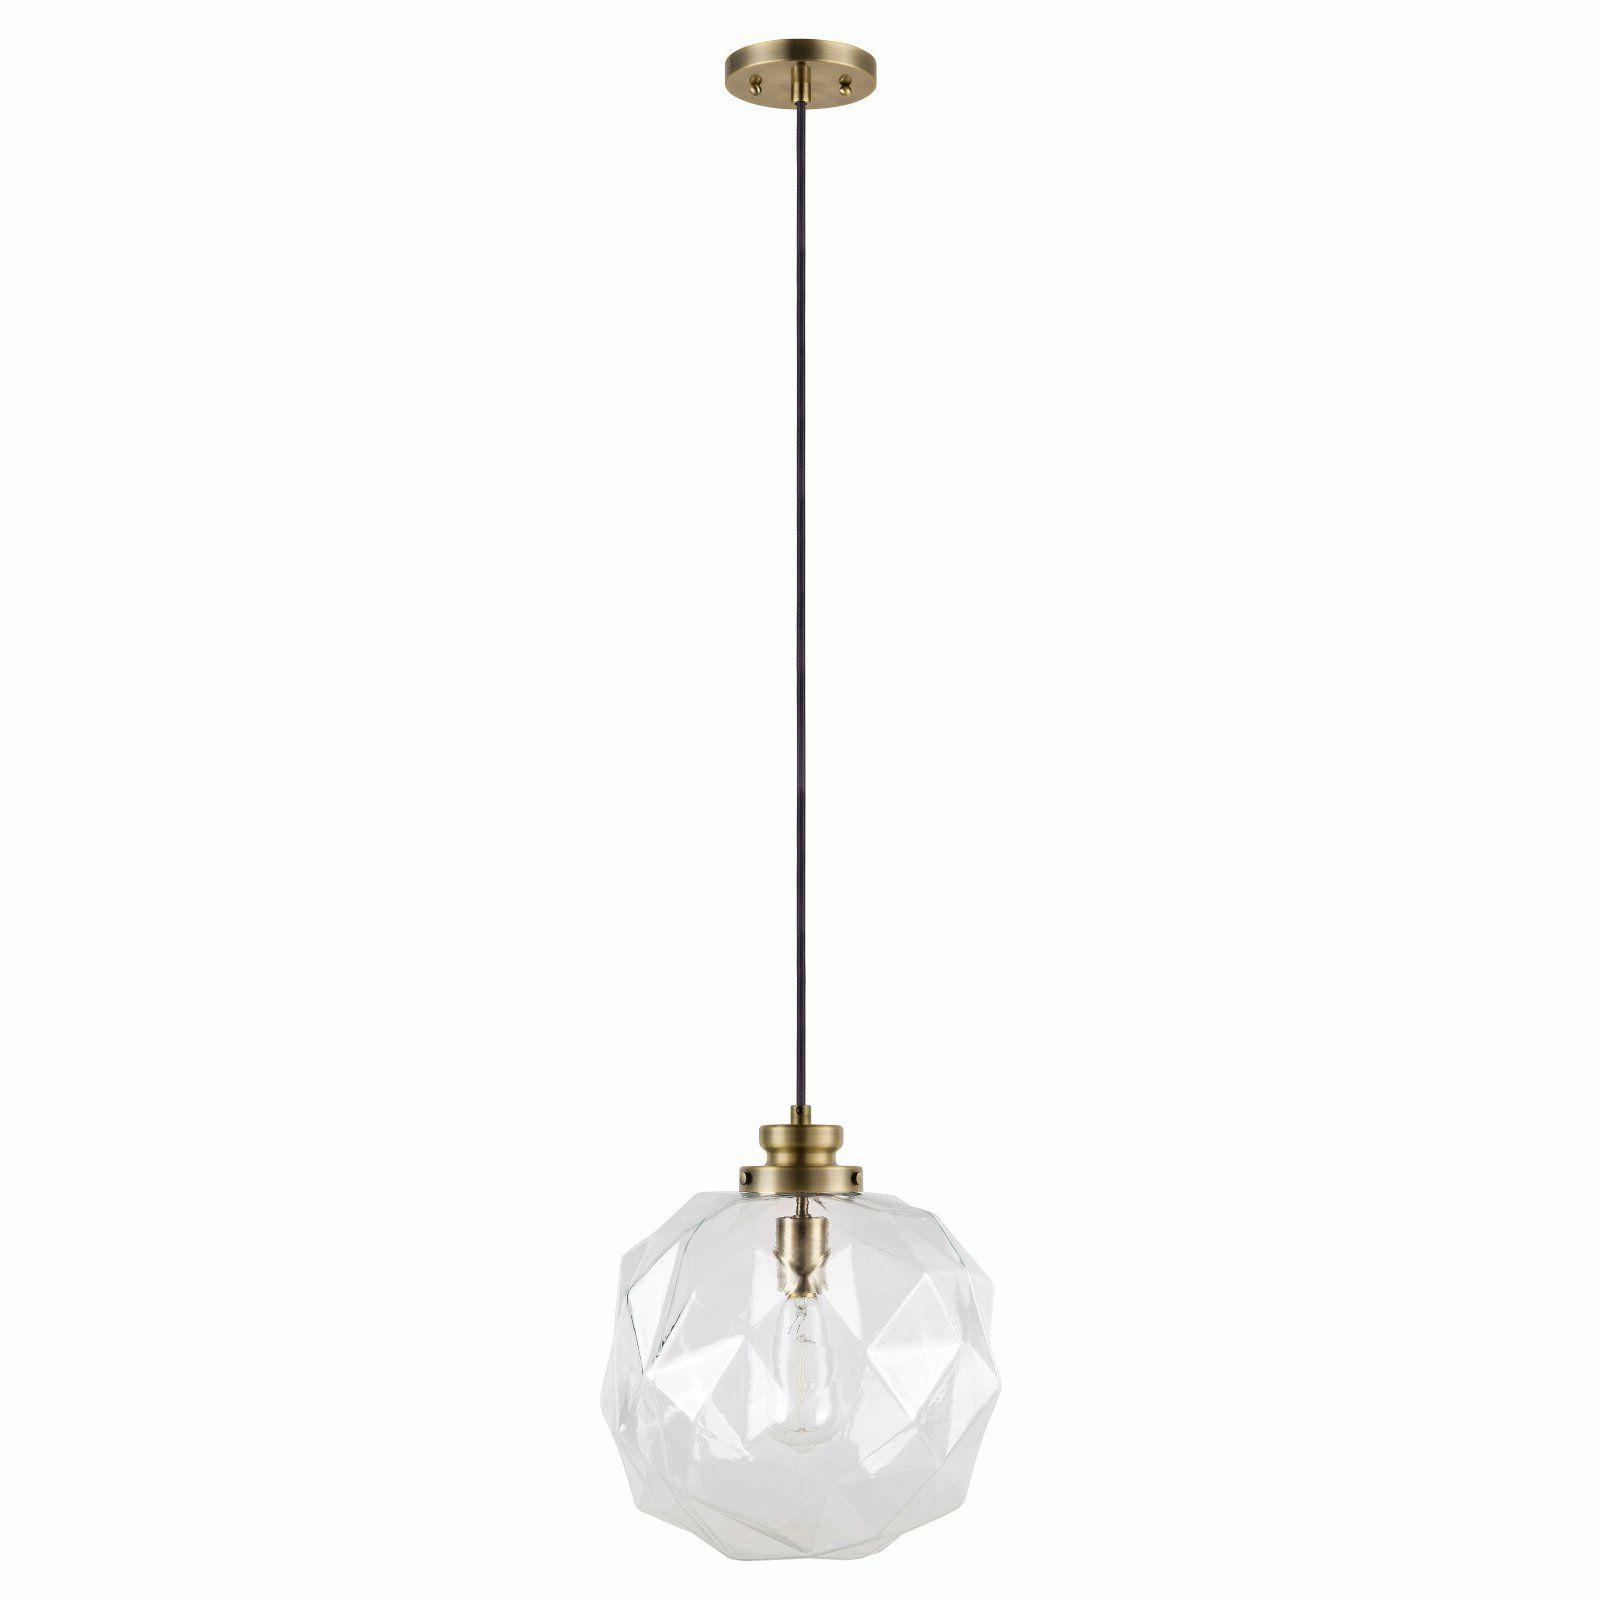 Catalina Lighting 19965-000 Rockford 14-inch Clear Glass Fac